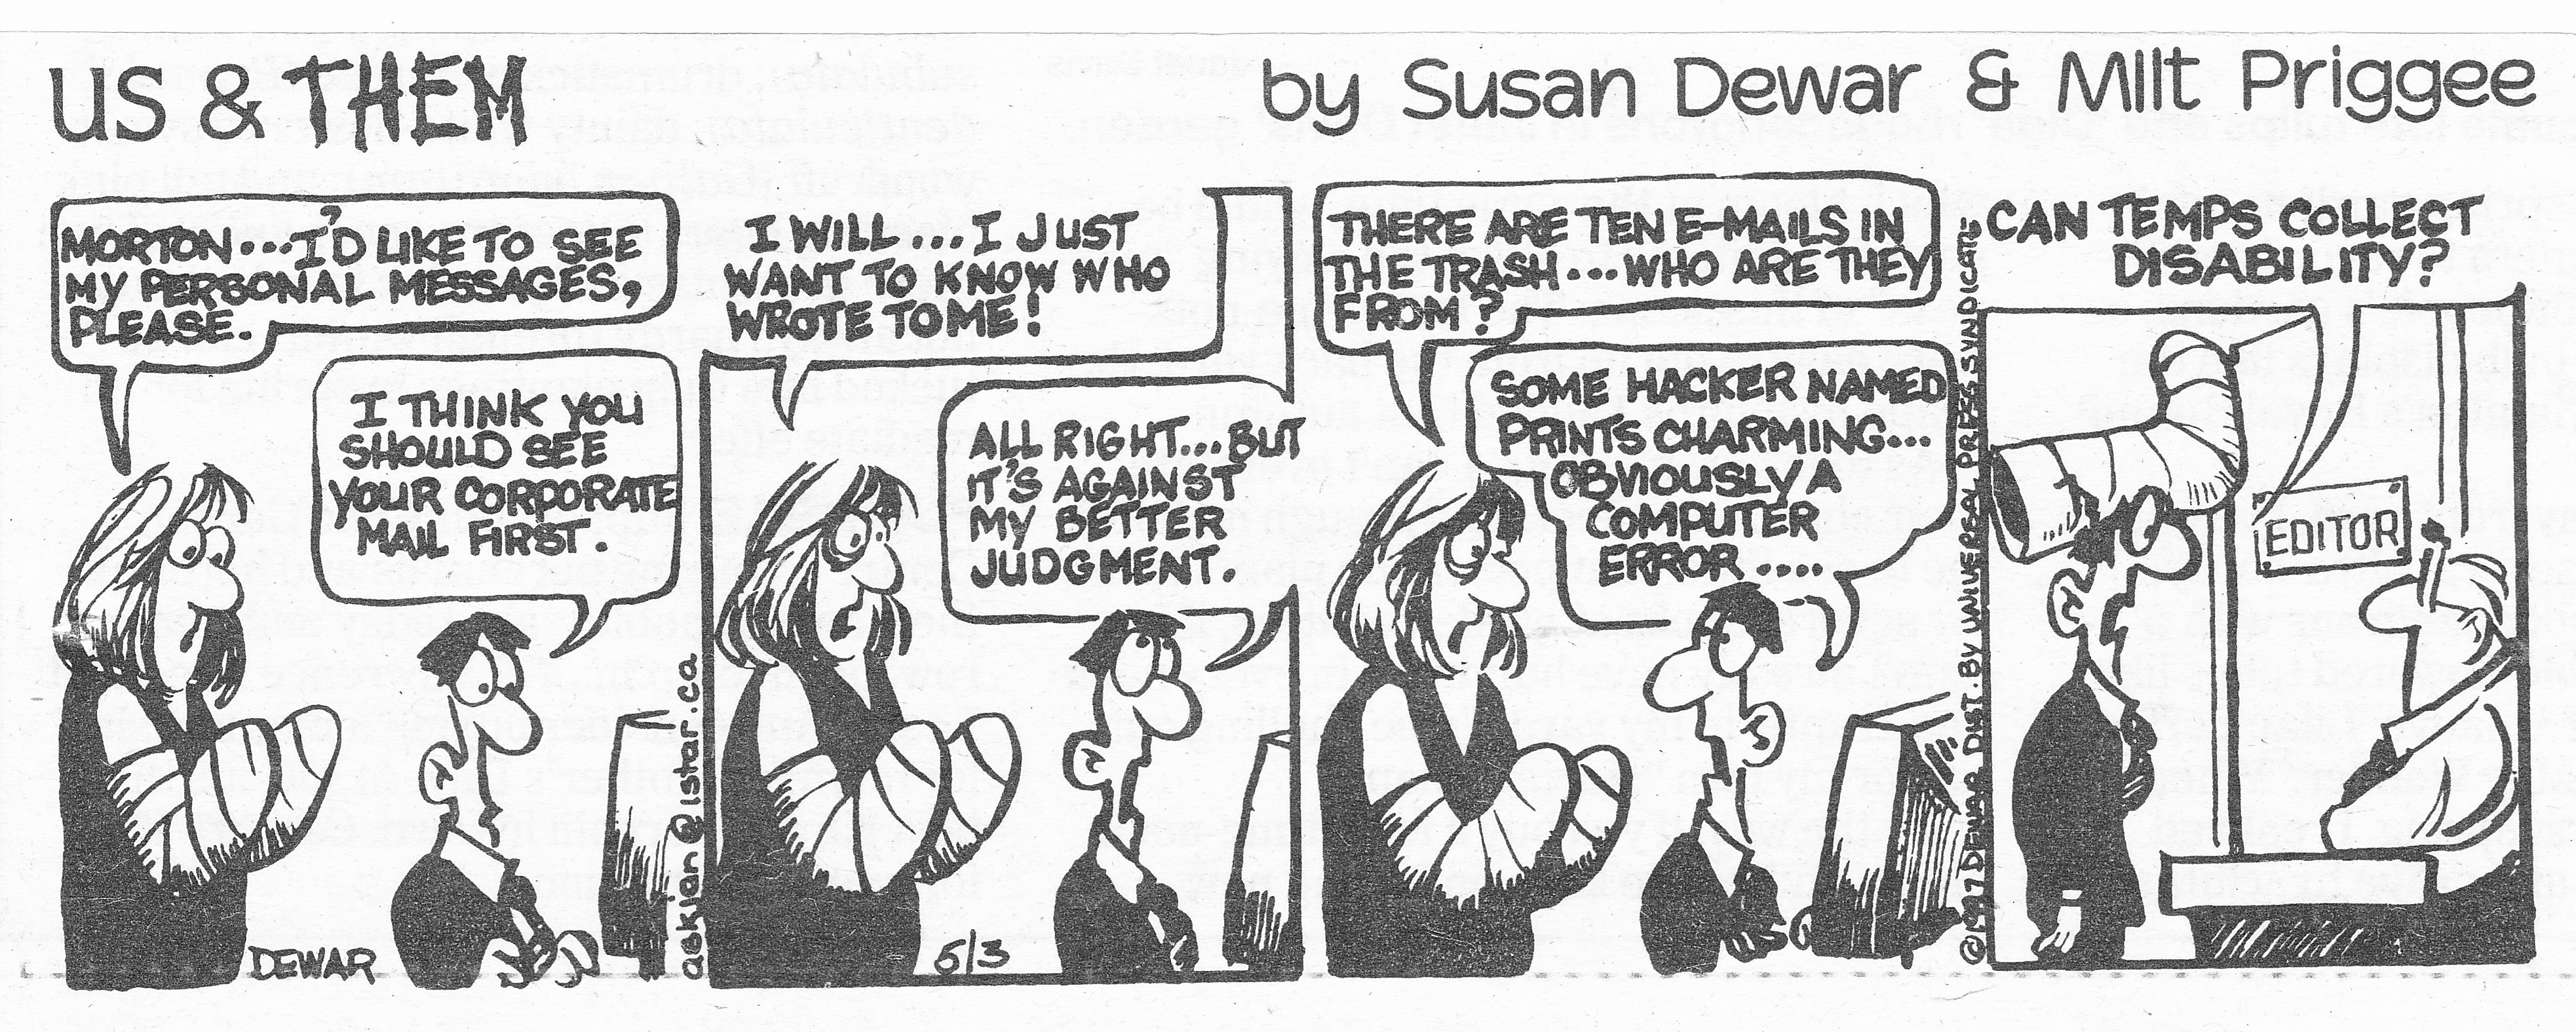 C:\Users\Robert\Documents\CARTOONING ILLUSTRATION ANIMATION\IMAGE CARTOON\IMAGE CARTOON U\US & THEM, Dewar Susan Toronto Sun  5 April 1997.jpg